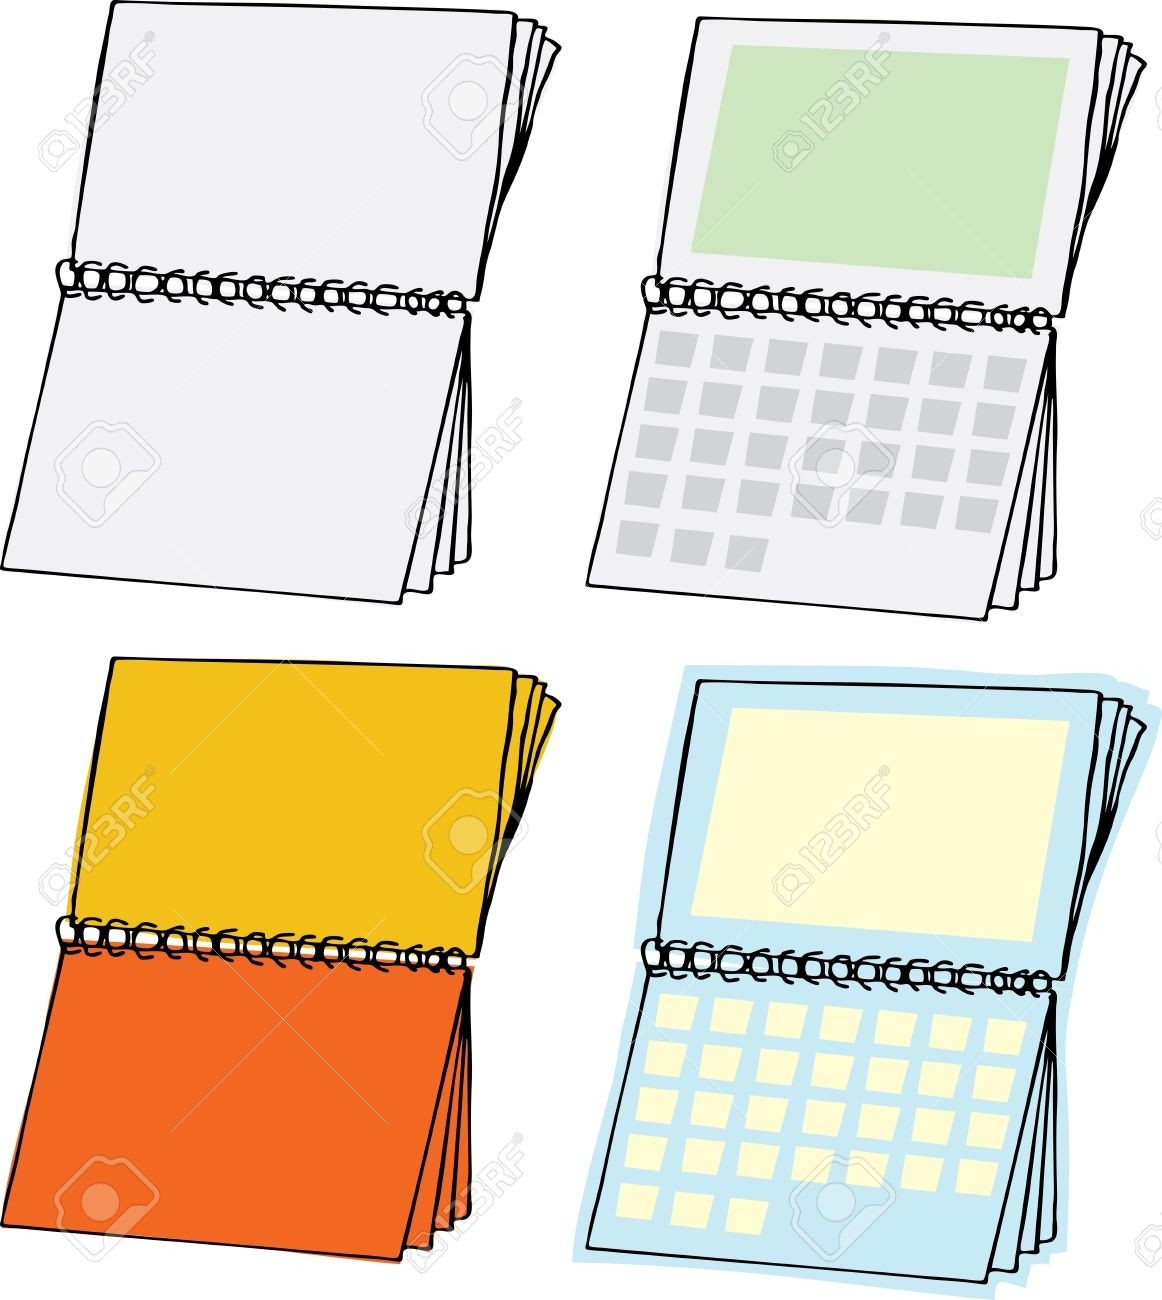 Four Types Of Blank Spiral Bound Calendars-Blank Spiral Bound Calendar